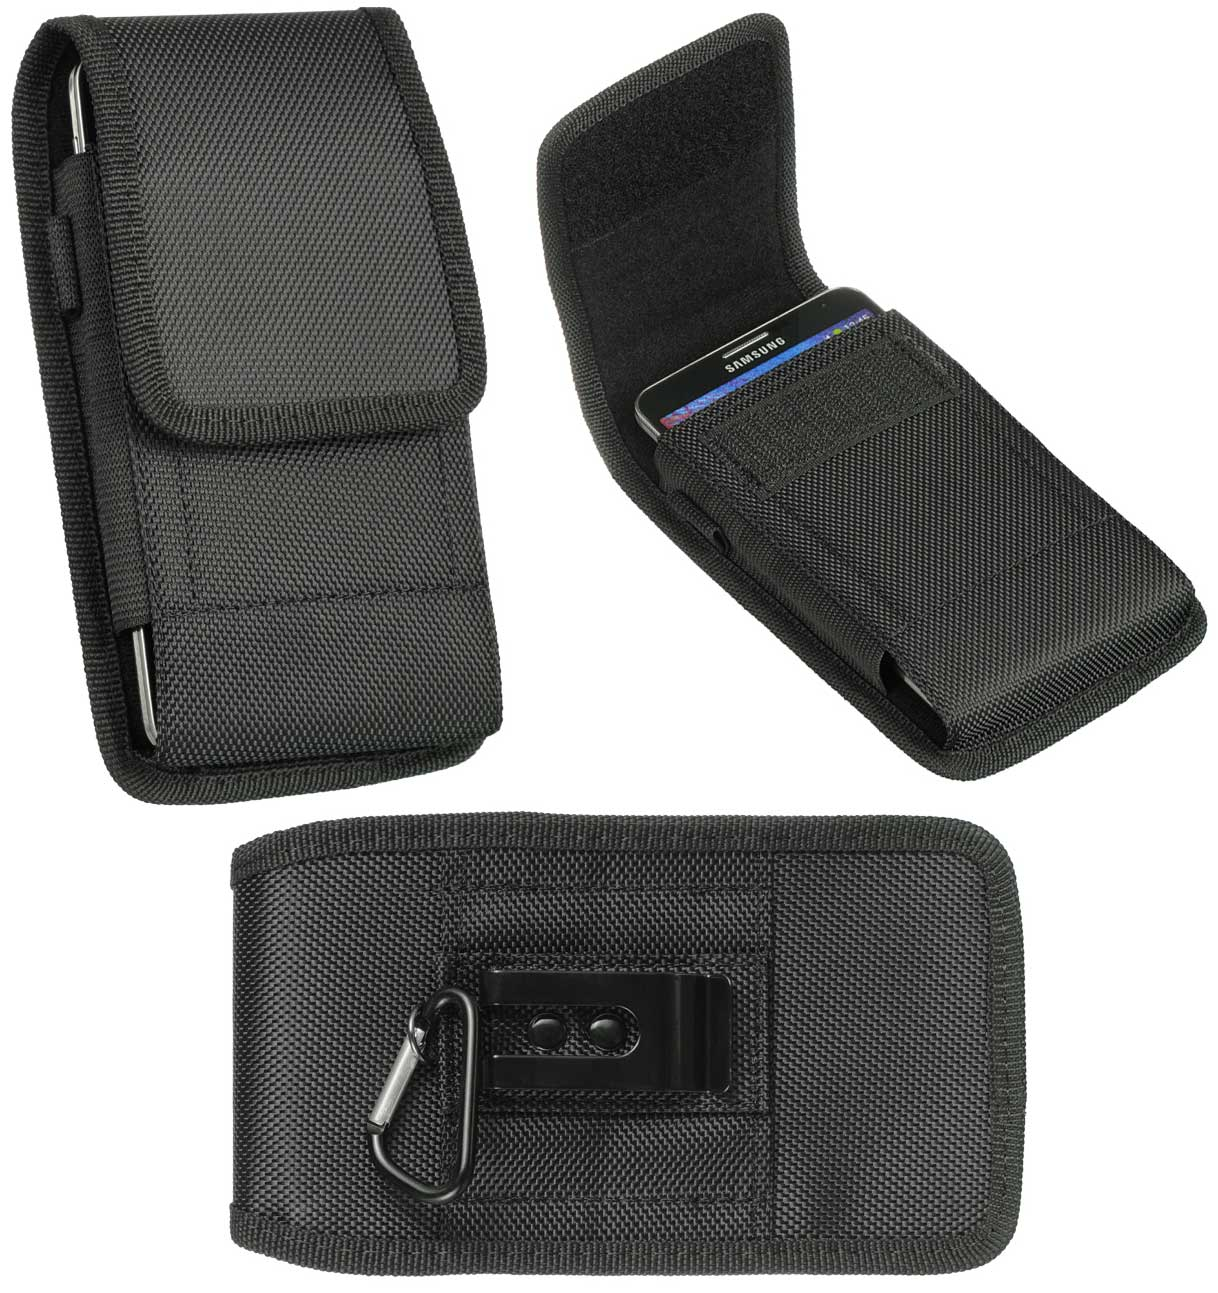 Samsung Galaxy S10 Plus Neoprene Nylon Case Pouch Clip Hook Black